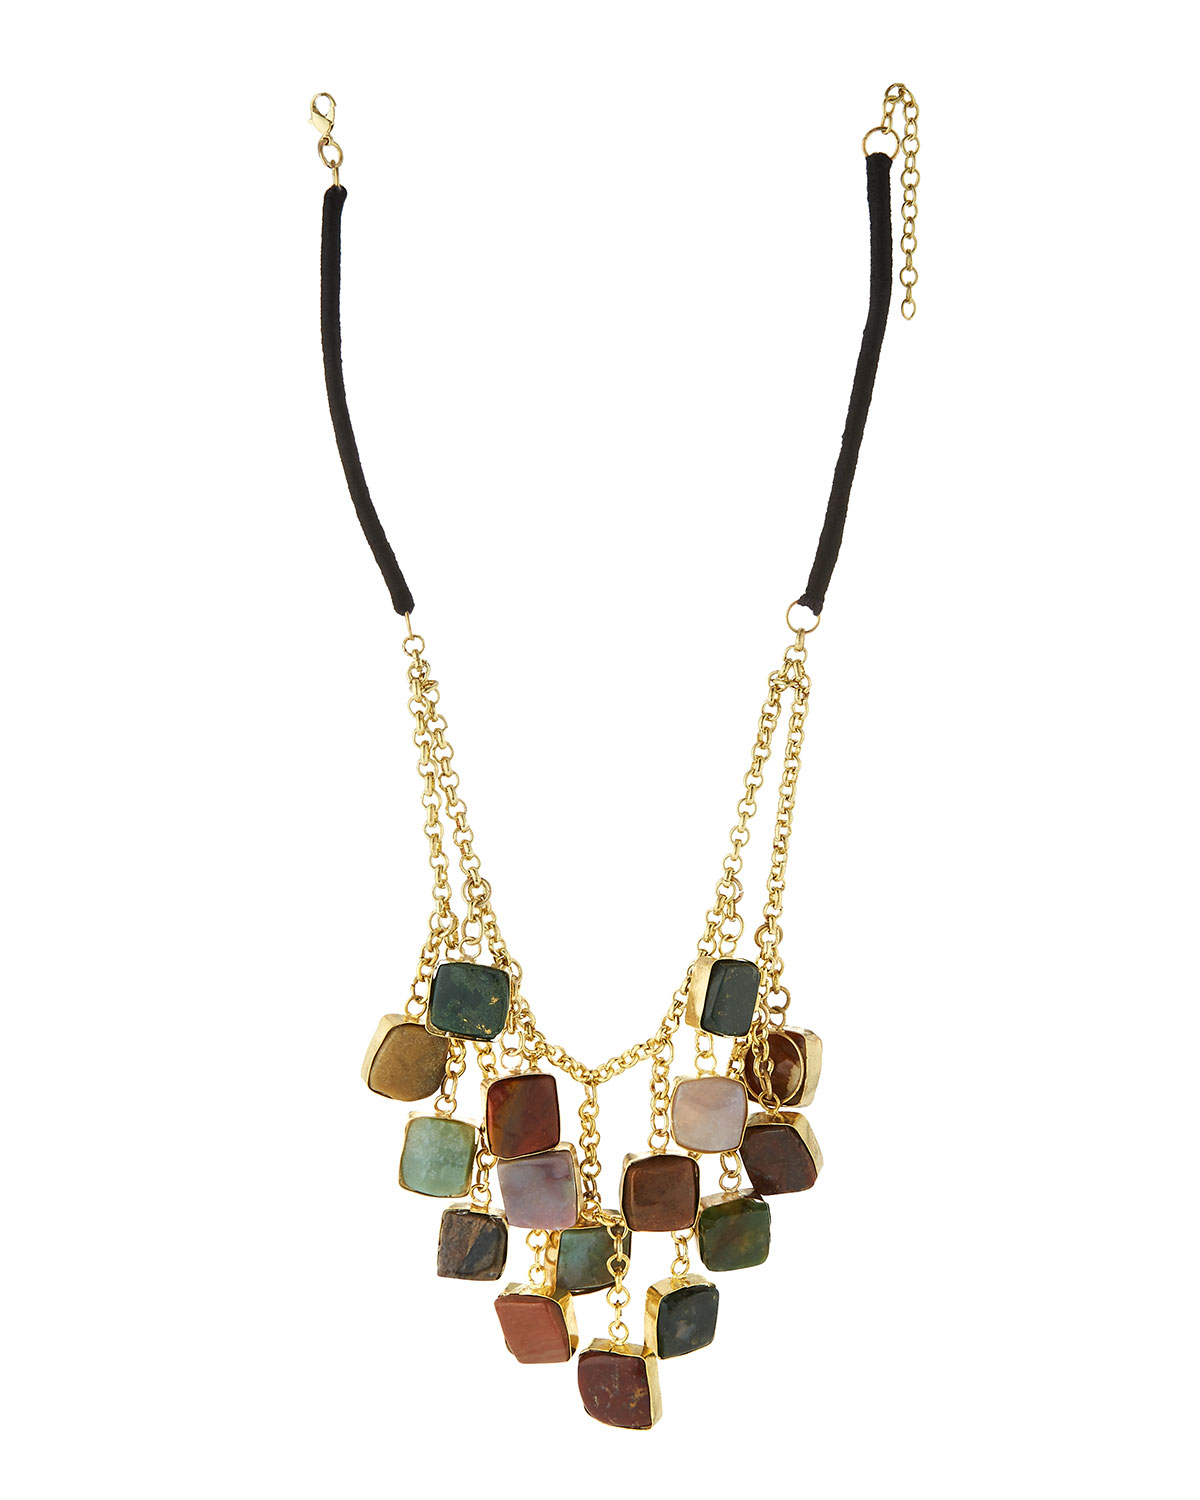 Kenneth Jay Lane Polished Gold Jade Stations Necklace Gold/jade KNHiiL7o